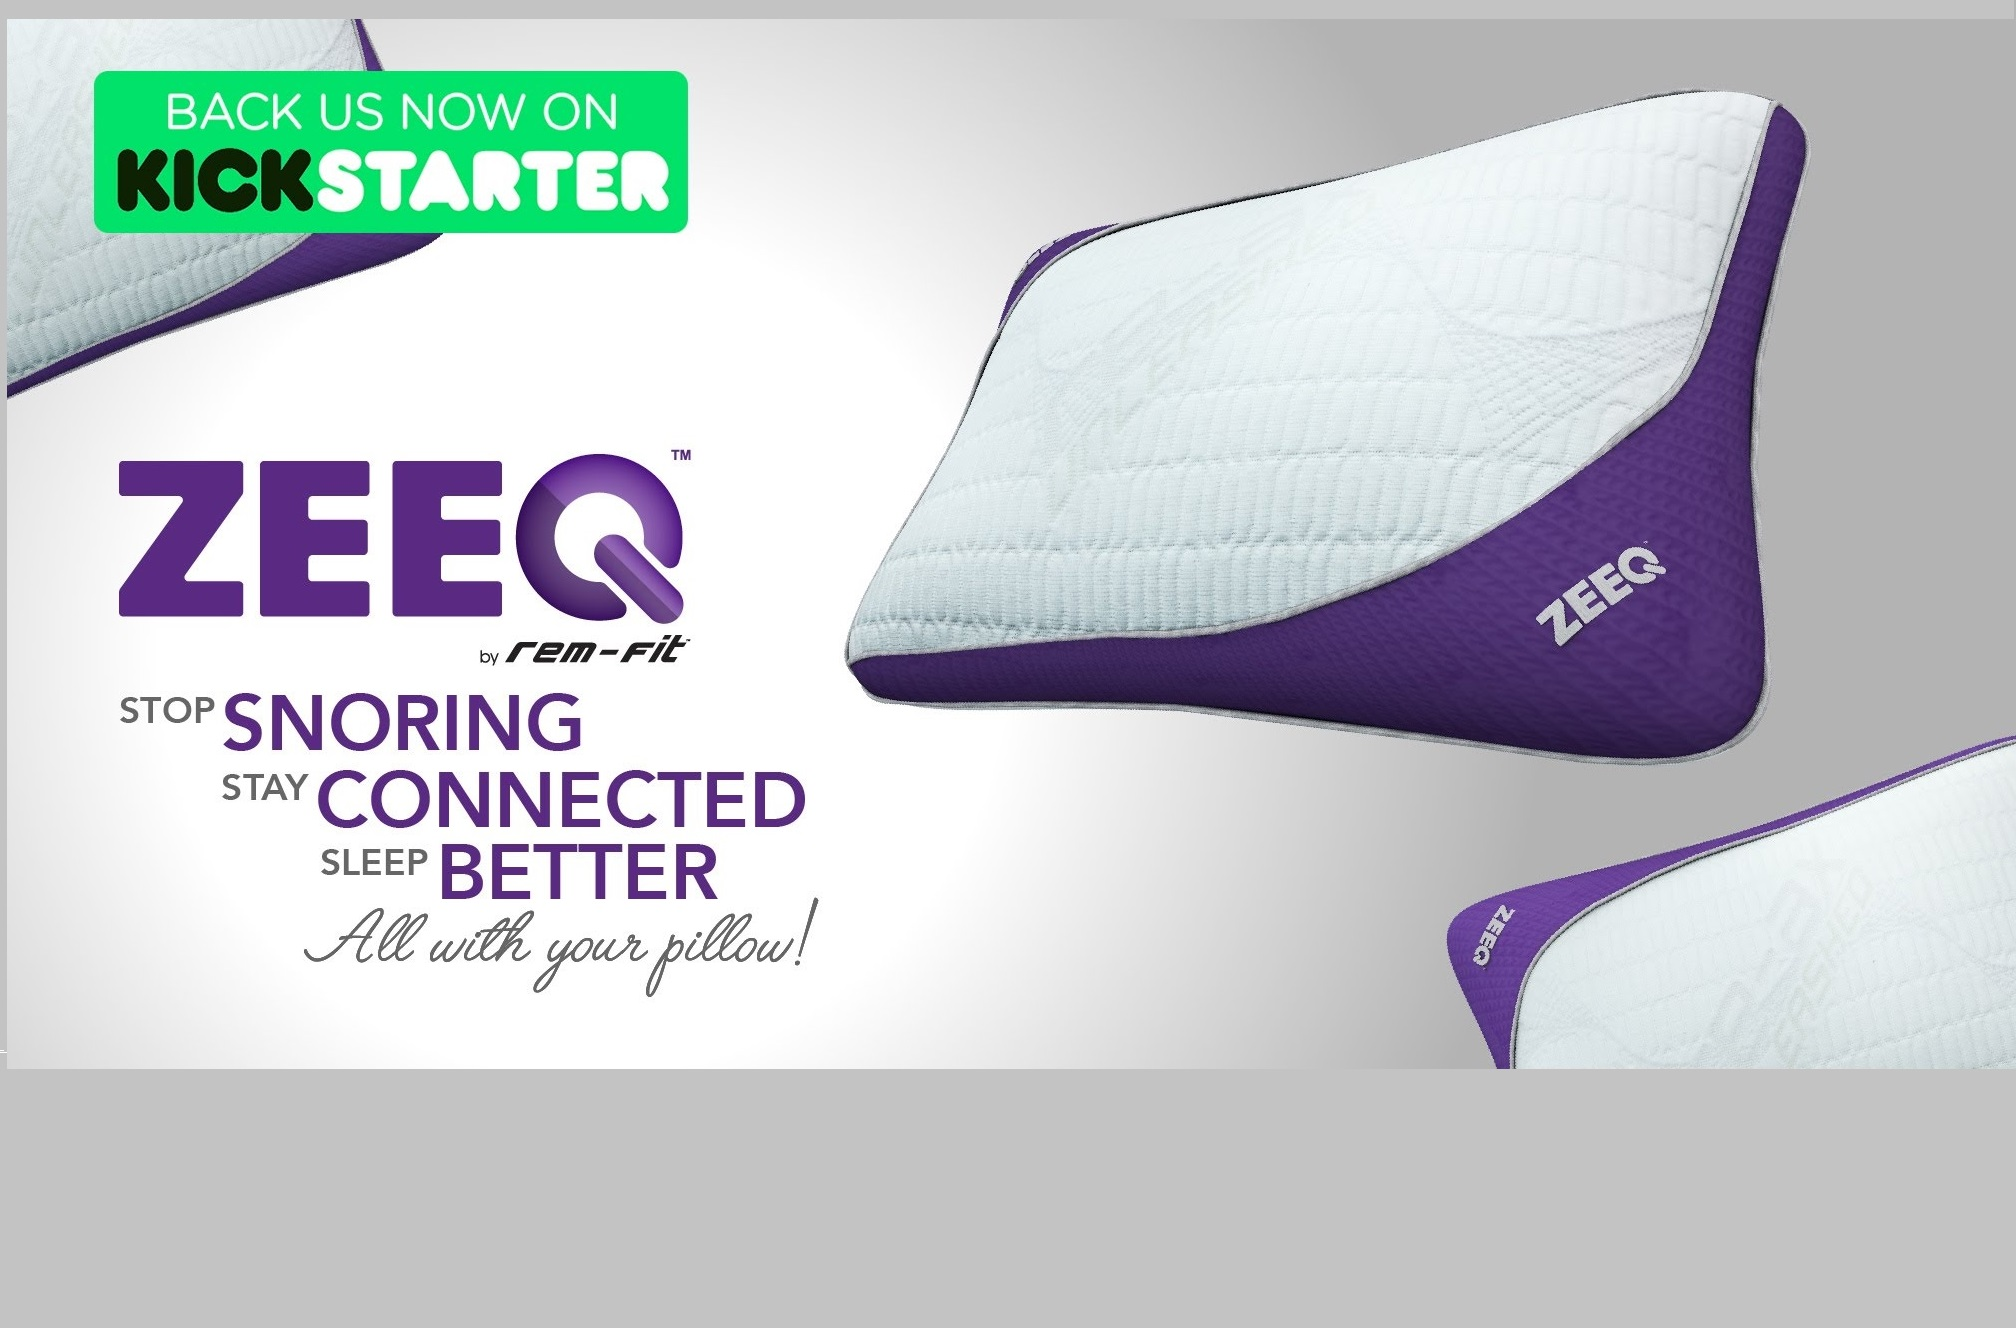 Photo of this is no longer a dream: Zeeq is the smart pillow that will make you stop snoring